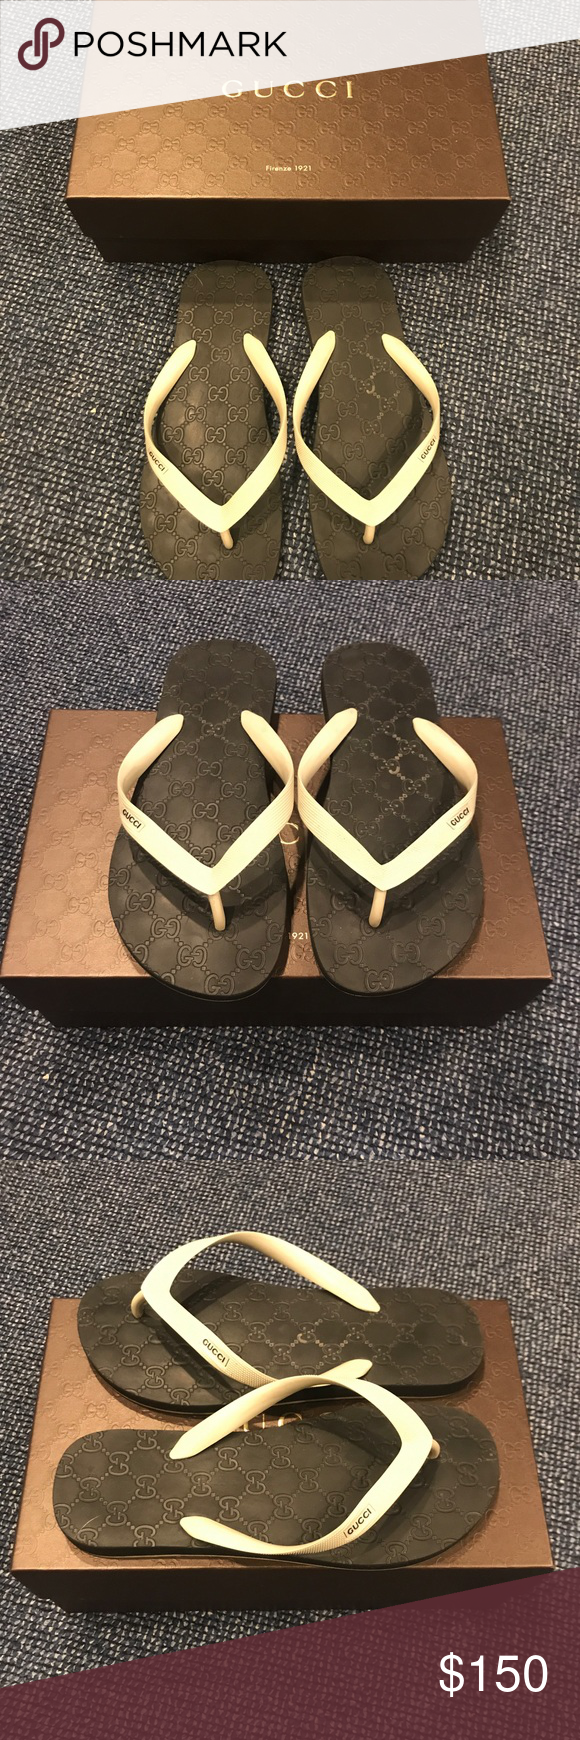 66a0ab57d01304 HOST PICK Gucci Men s Flip Flops With Box HOST PICK 100% Authentic Gucci  Men s Rubber Flip Flops With Box Men s Black   White Rubber Thong Style Flip  Flops ...